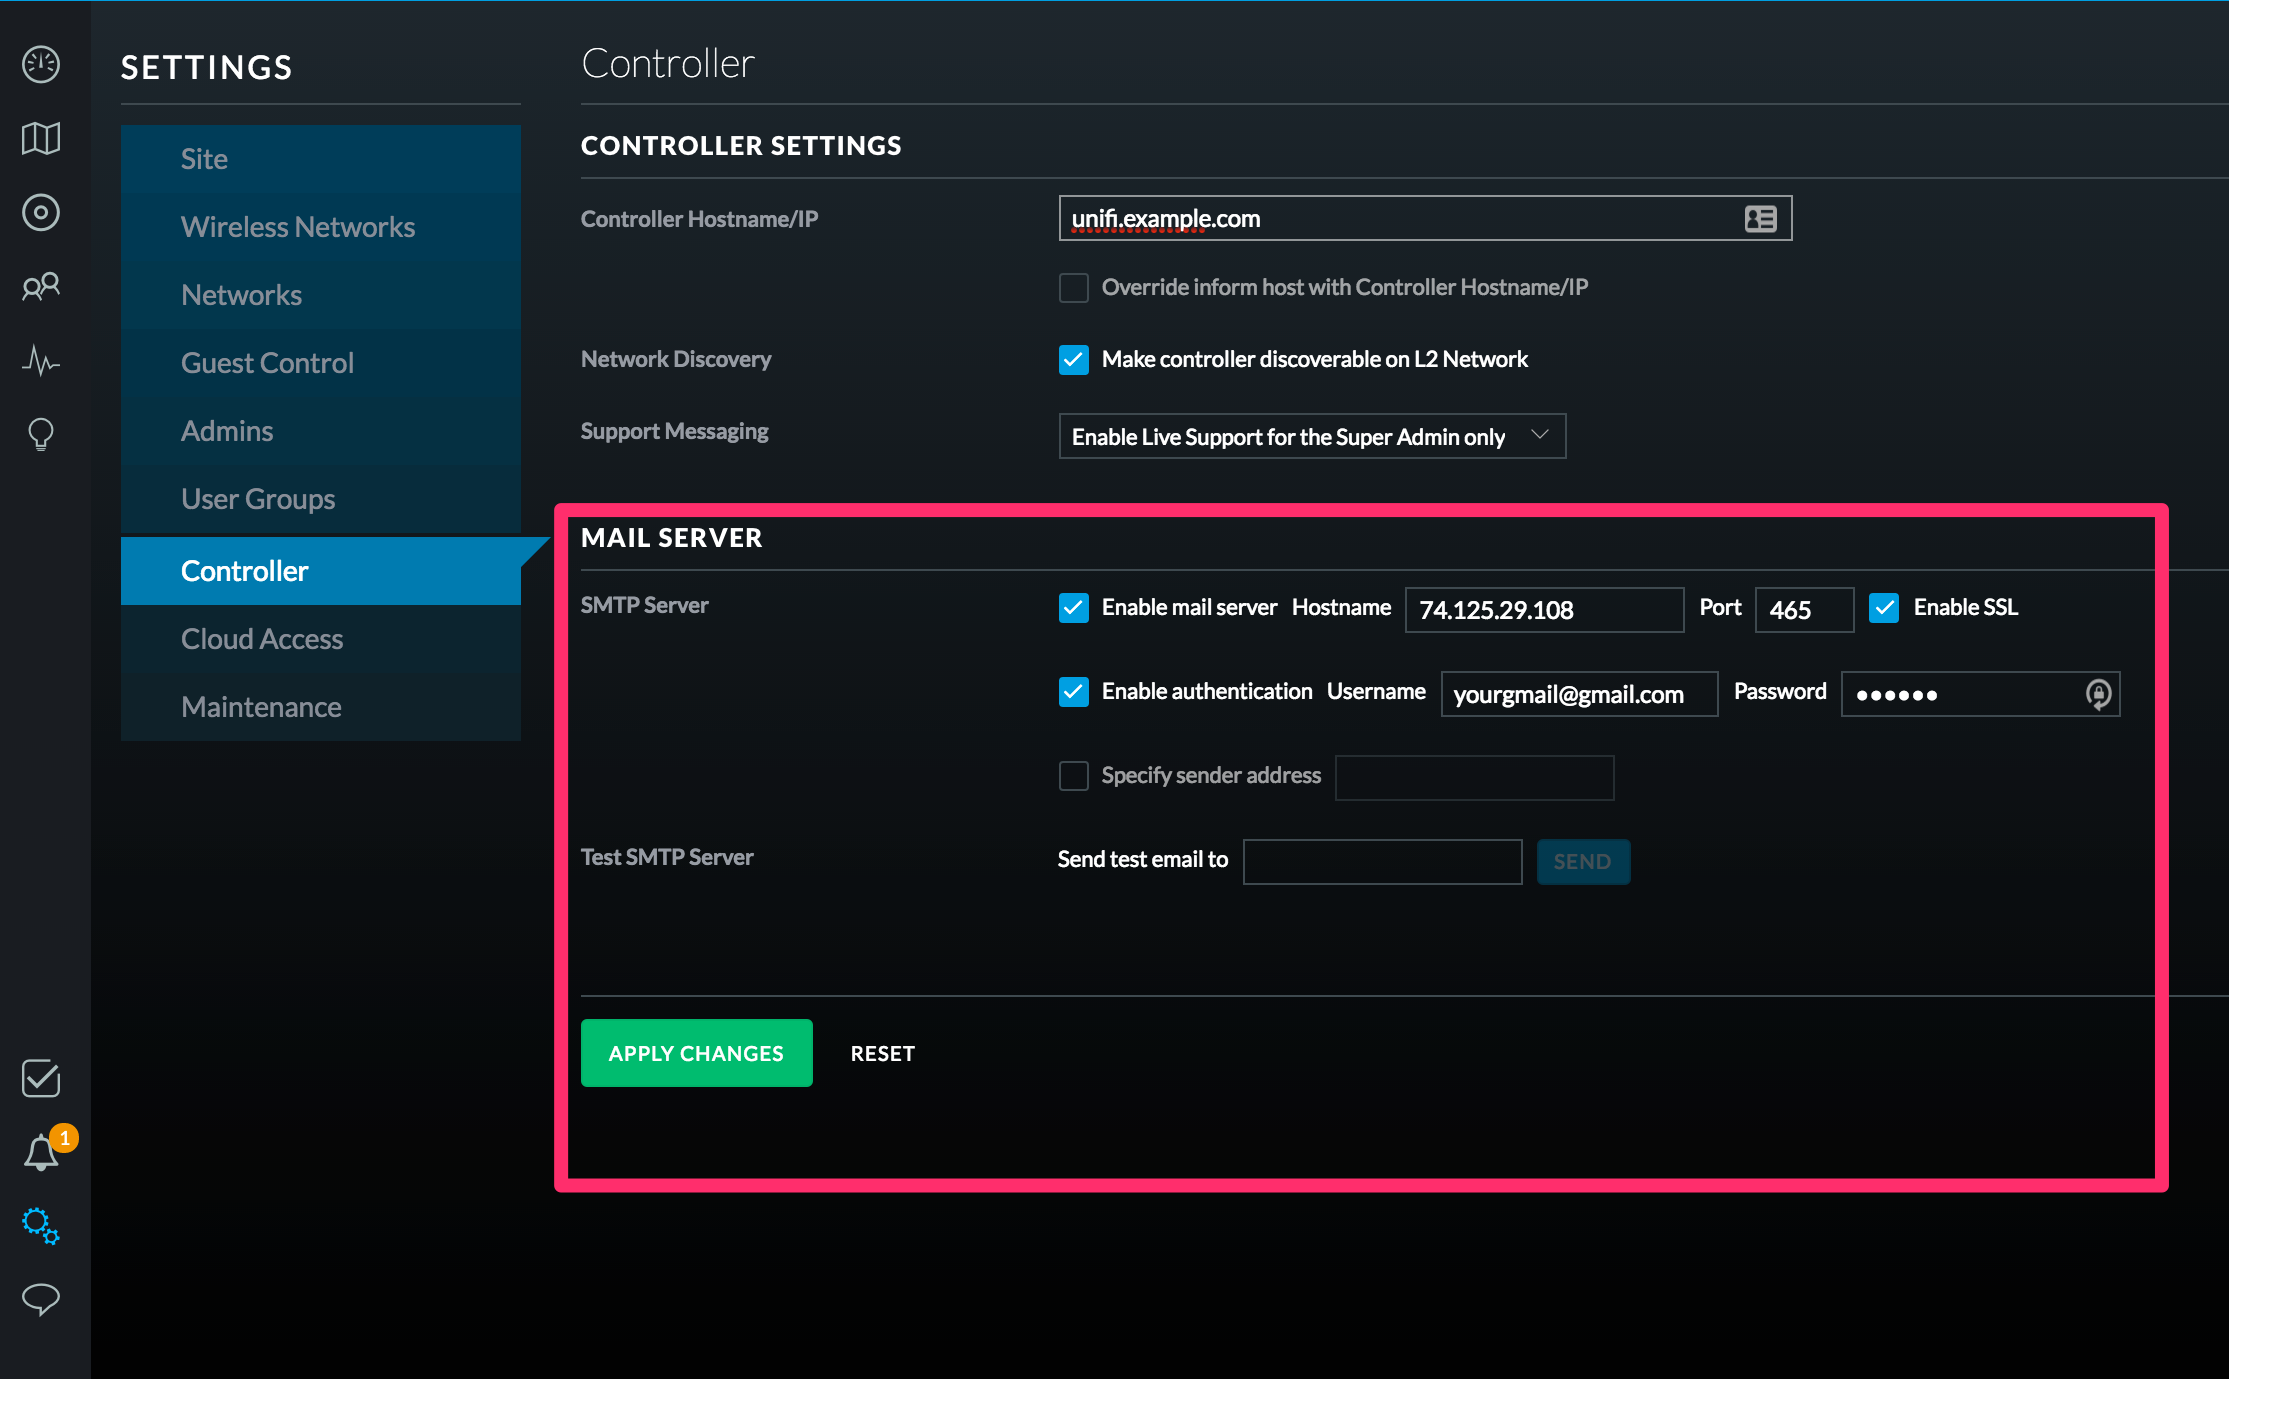 Running Unifi Controller in Docker on Synology - Chad Tindel